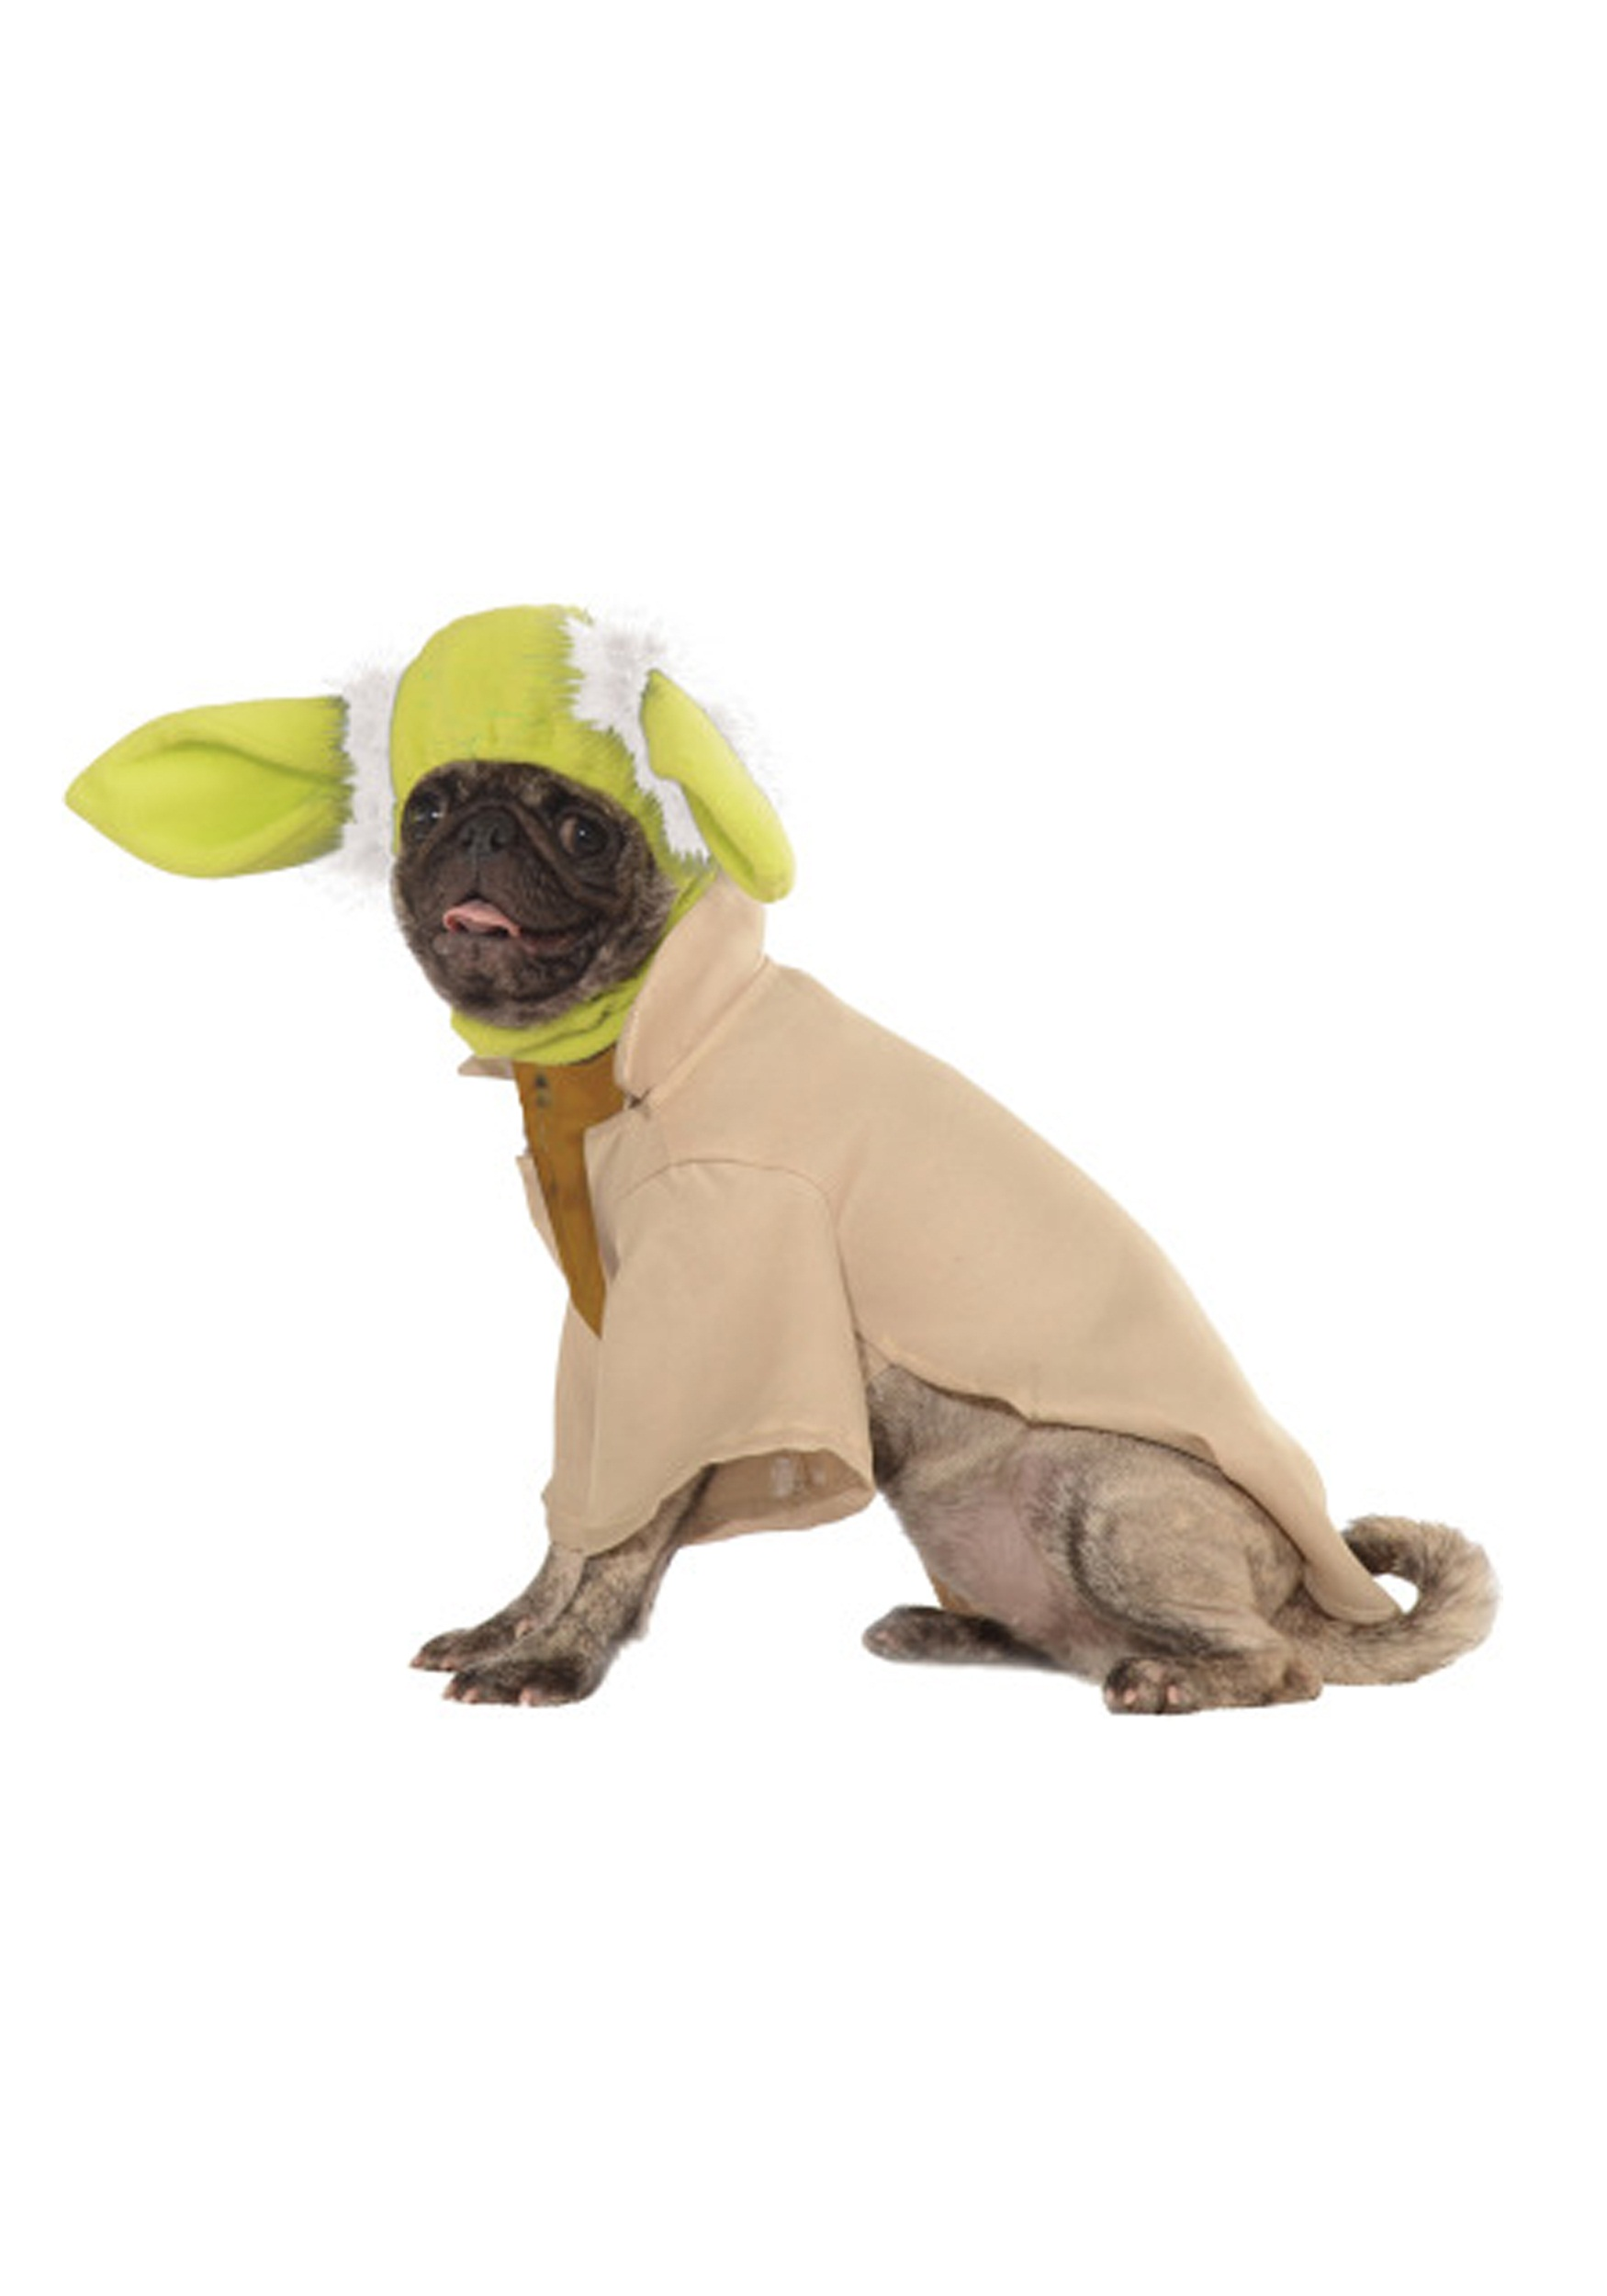 sc 1 st  Halloween Costumes : pet yoda costume  - Germanpascual.Com